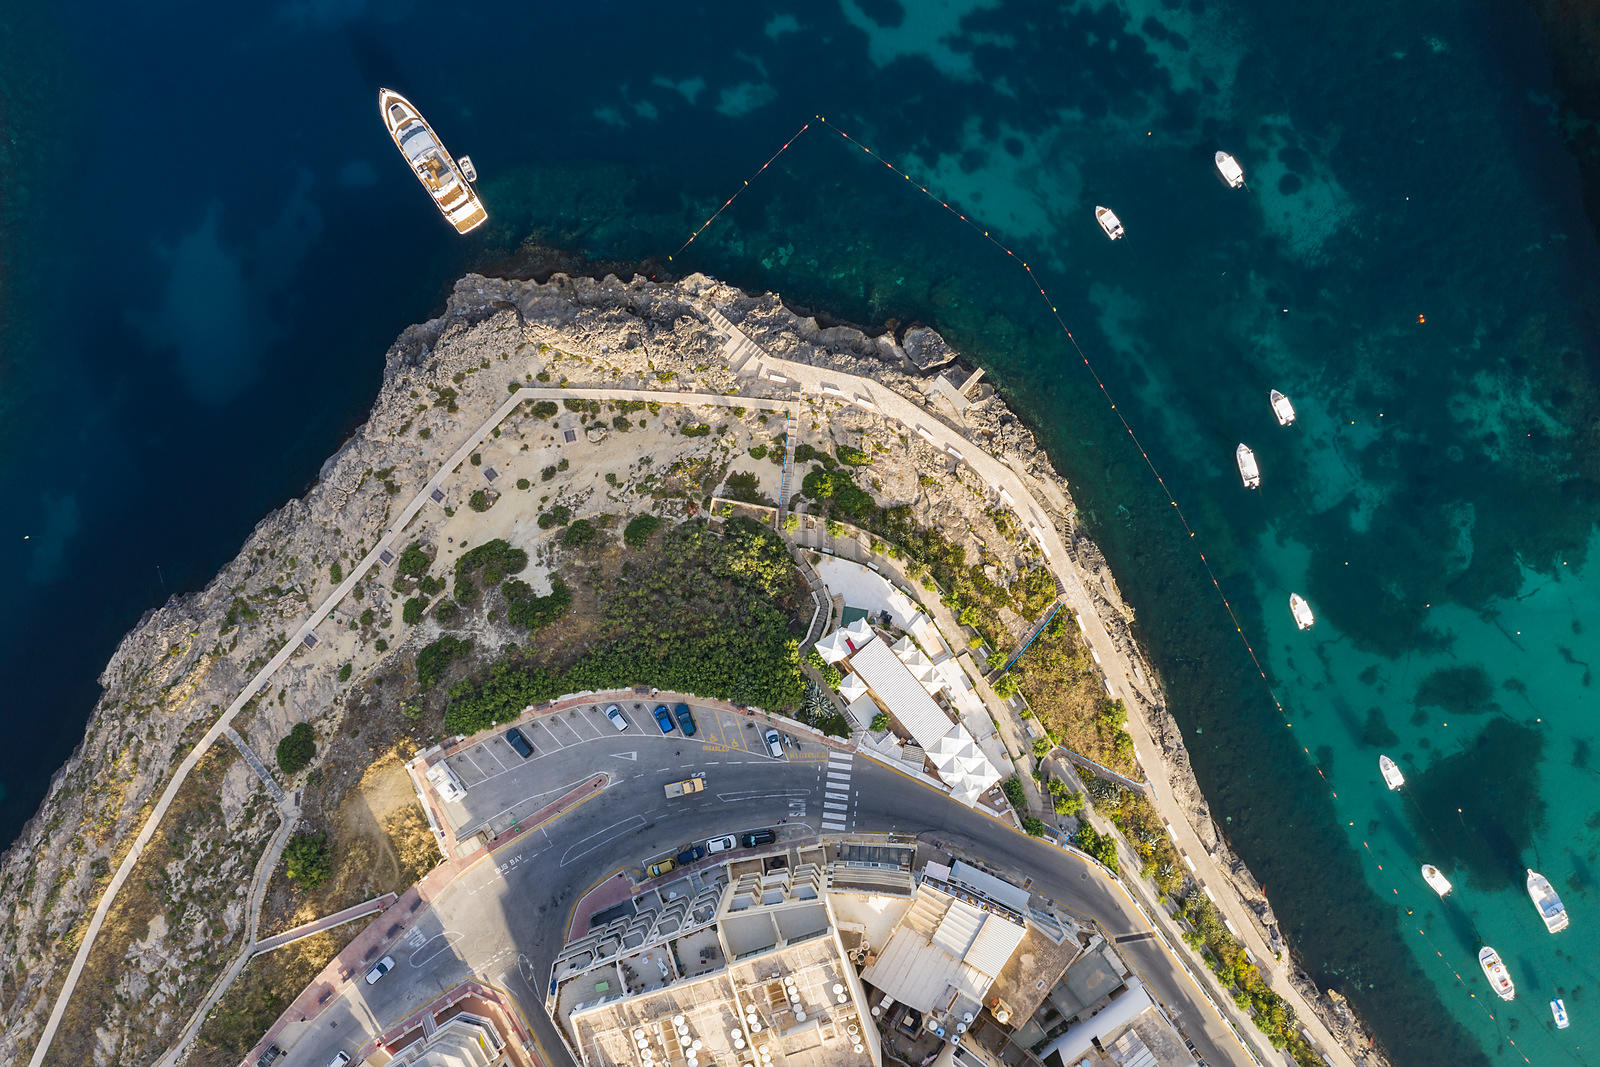 Aerial View of Mouth of Xlendi Bay